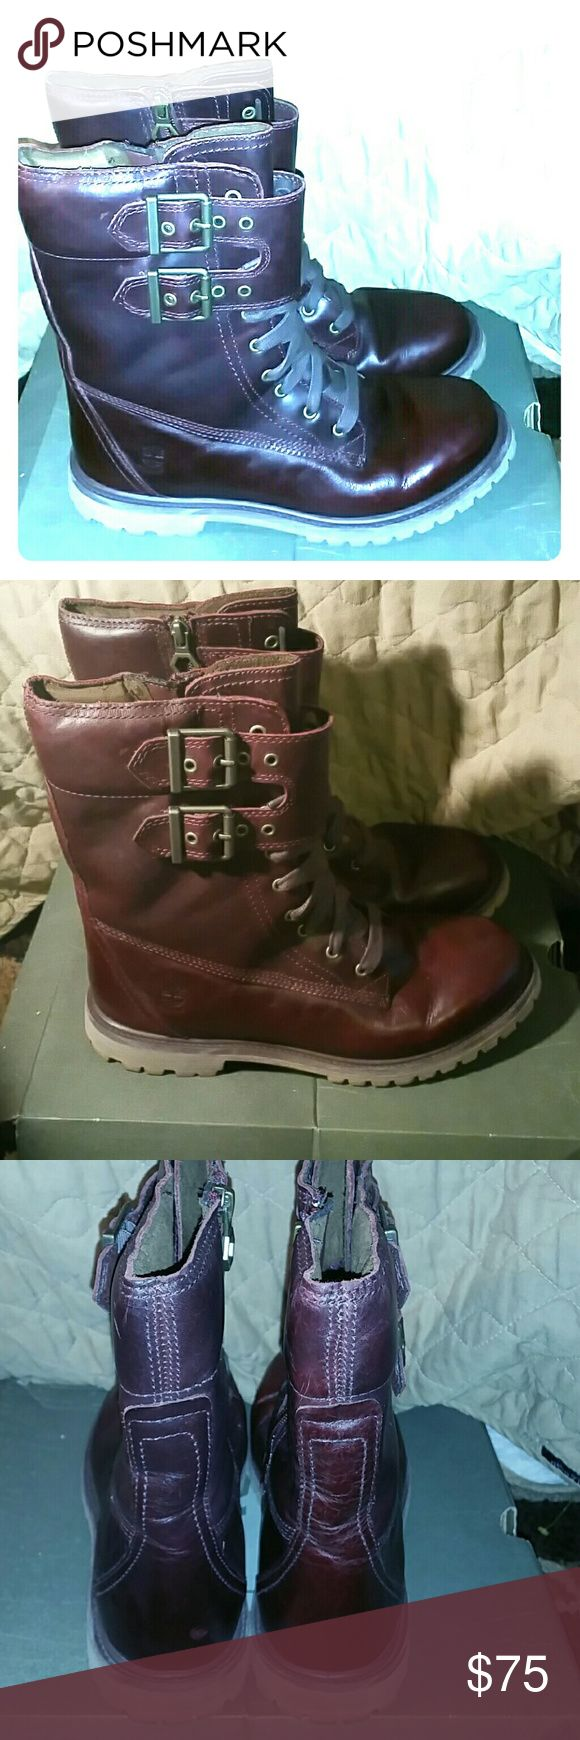 Burgundy Timbaland size 10 women's boots Barely worn, slight signs of wear Timberland Shoes